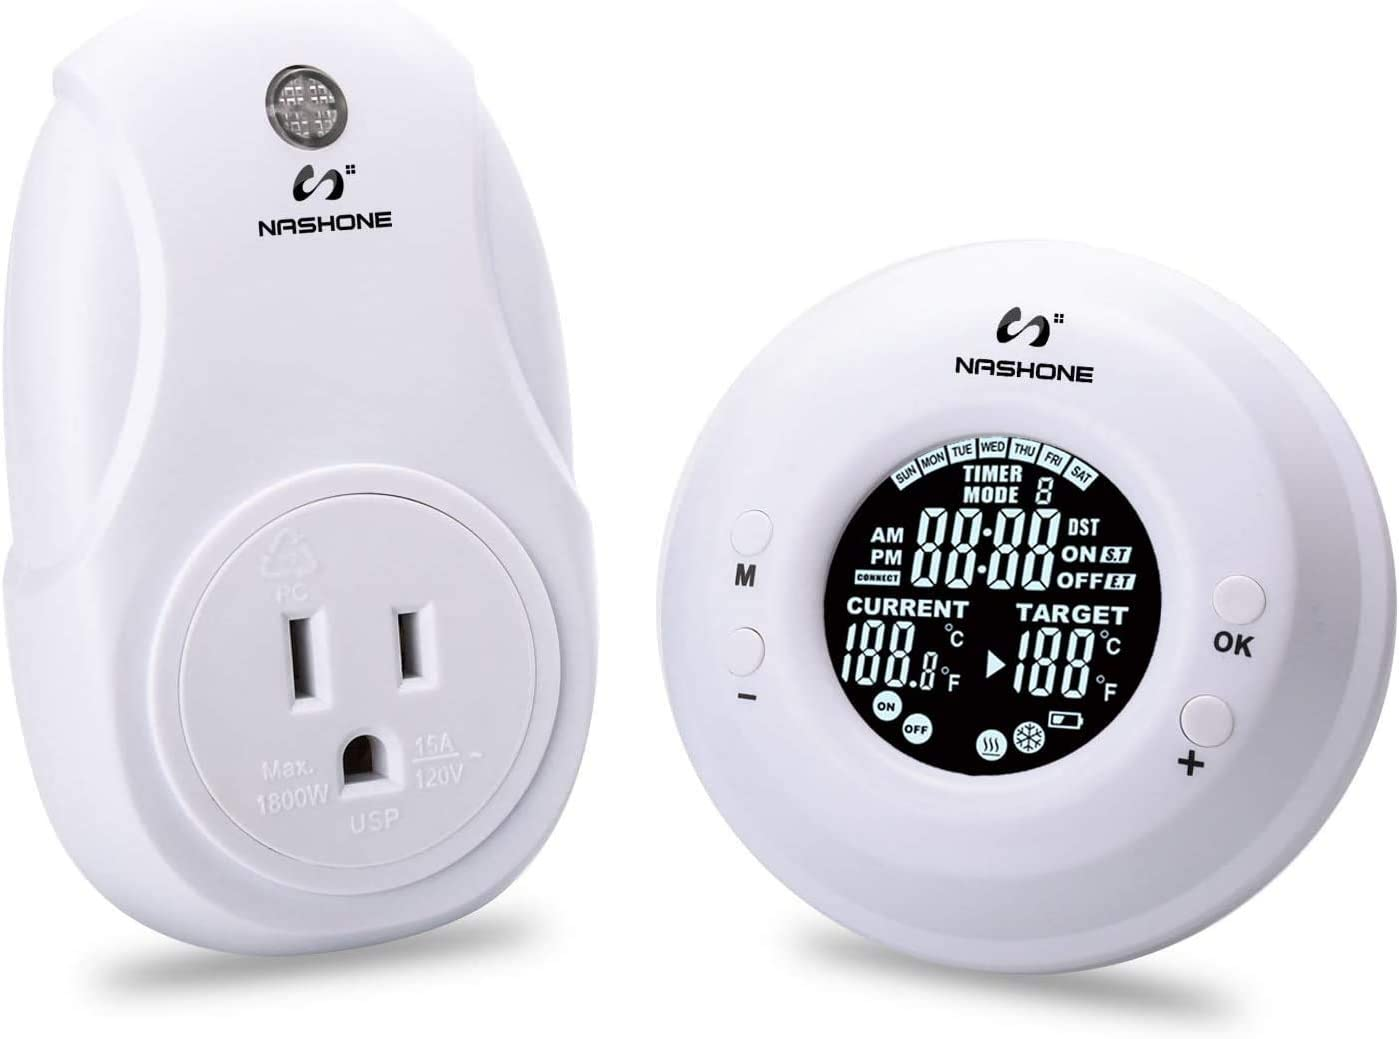 NASHONE 7-Day/4-Period Programmable Wireless Thermostat Outlet,Electric Thermostat Controlled Outlet with Built-in Temp Sensor Romote Control for Heaters and Coolers, Amp 15A